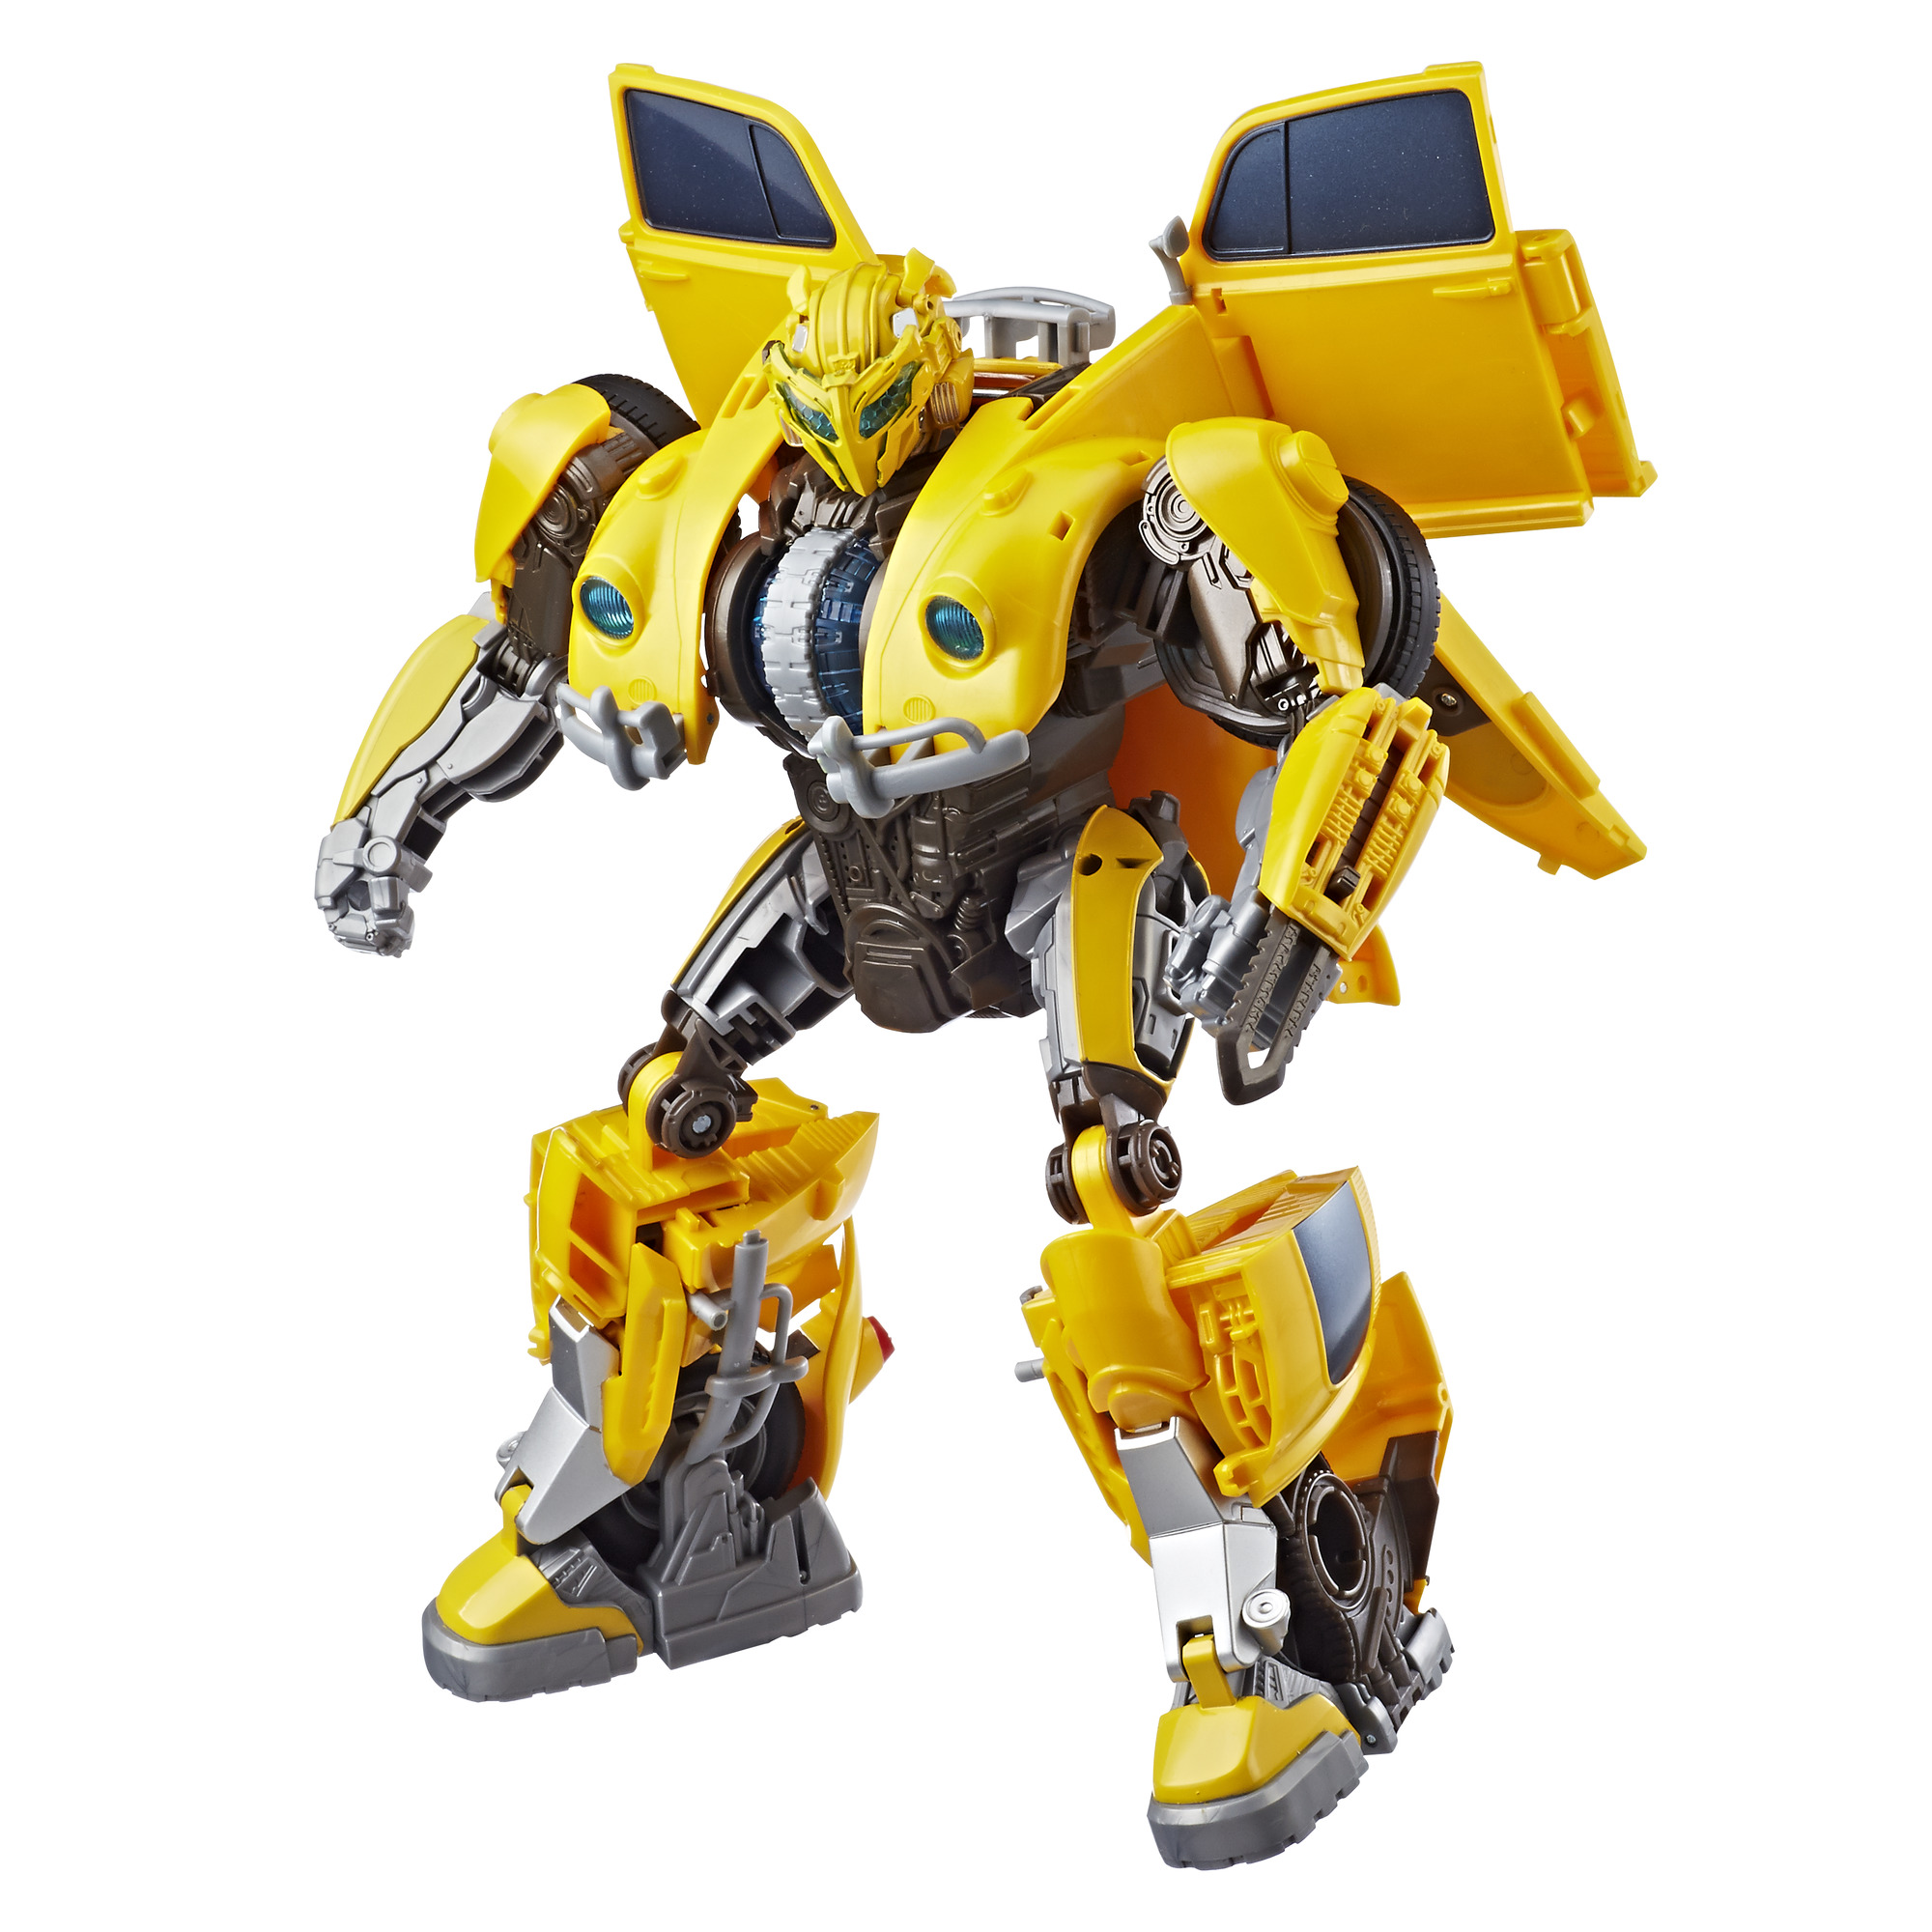 Transformers: Bumblebee -- Power Charge Bumblebee